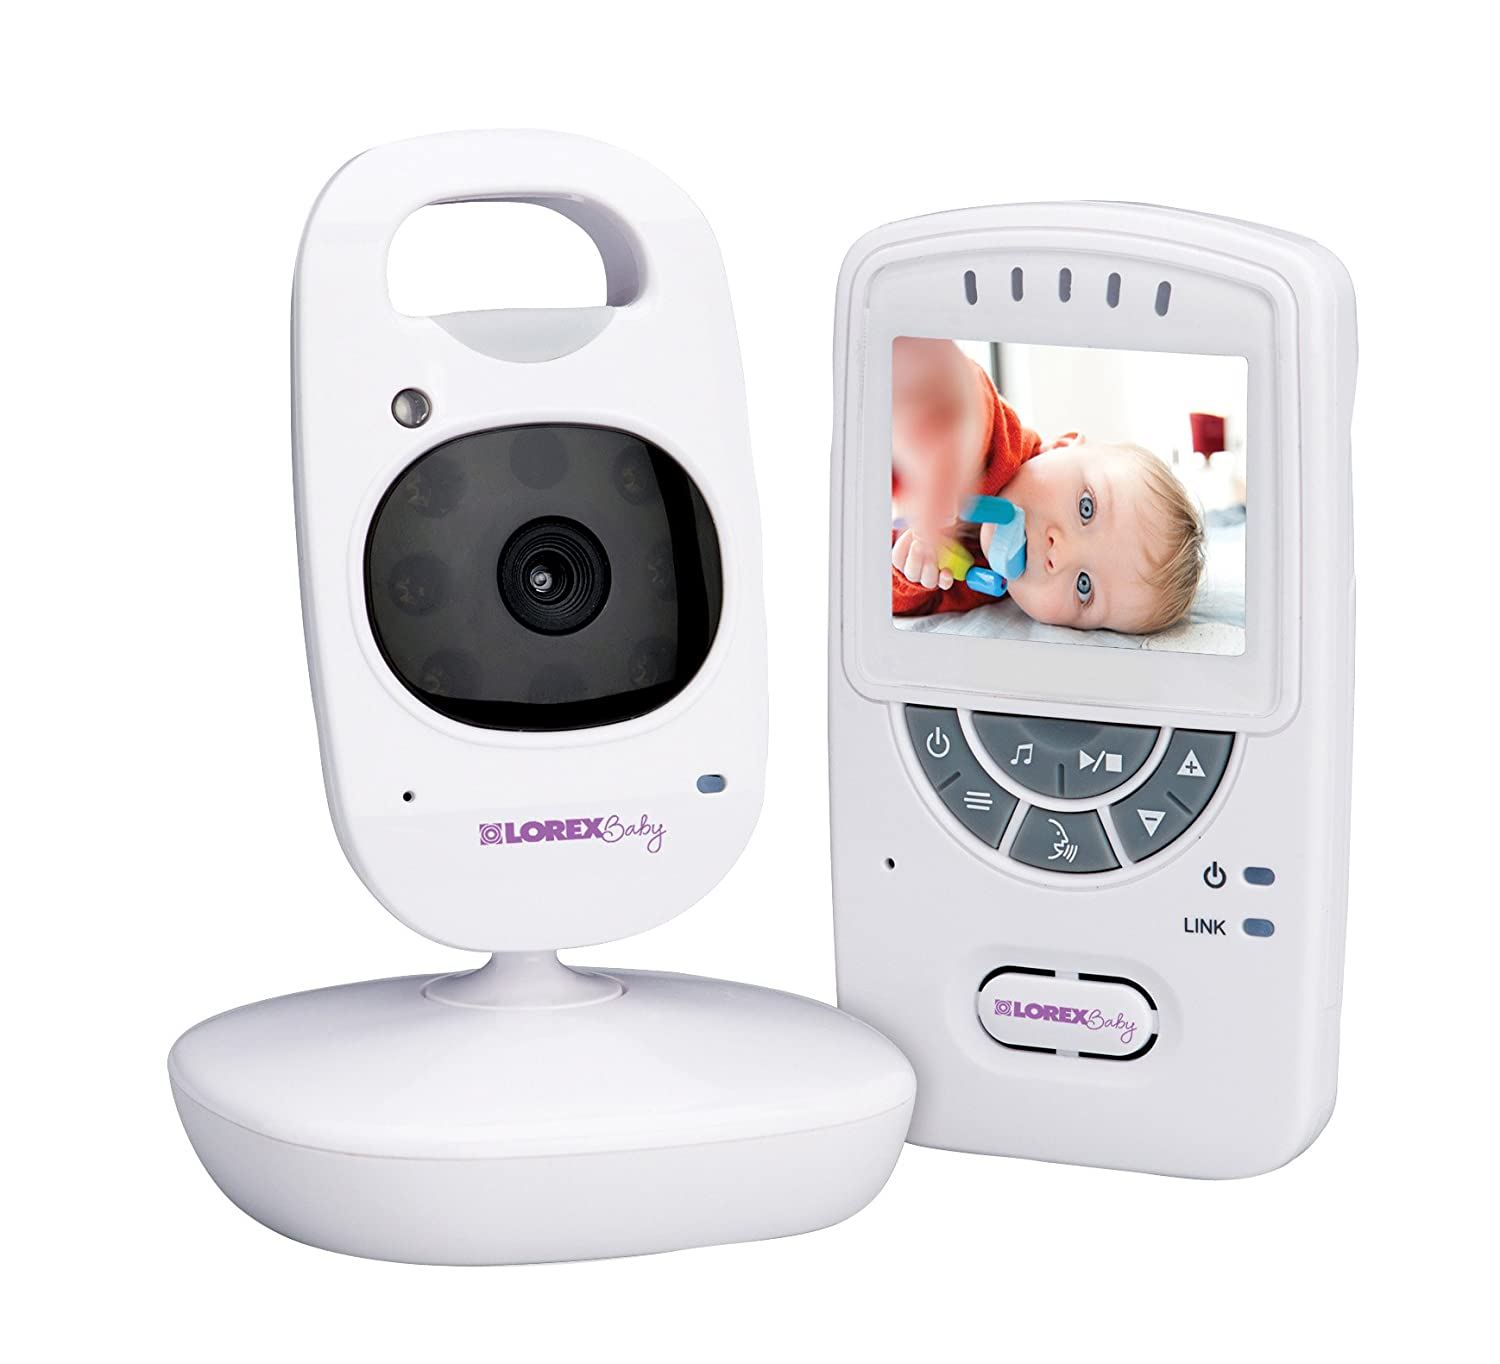 Lorex 2.4″ Sweet Peek Video Baby Monitor Review